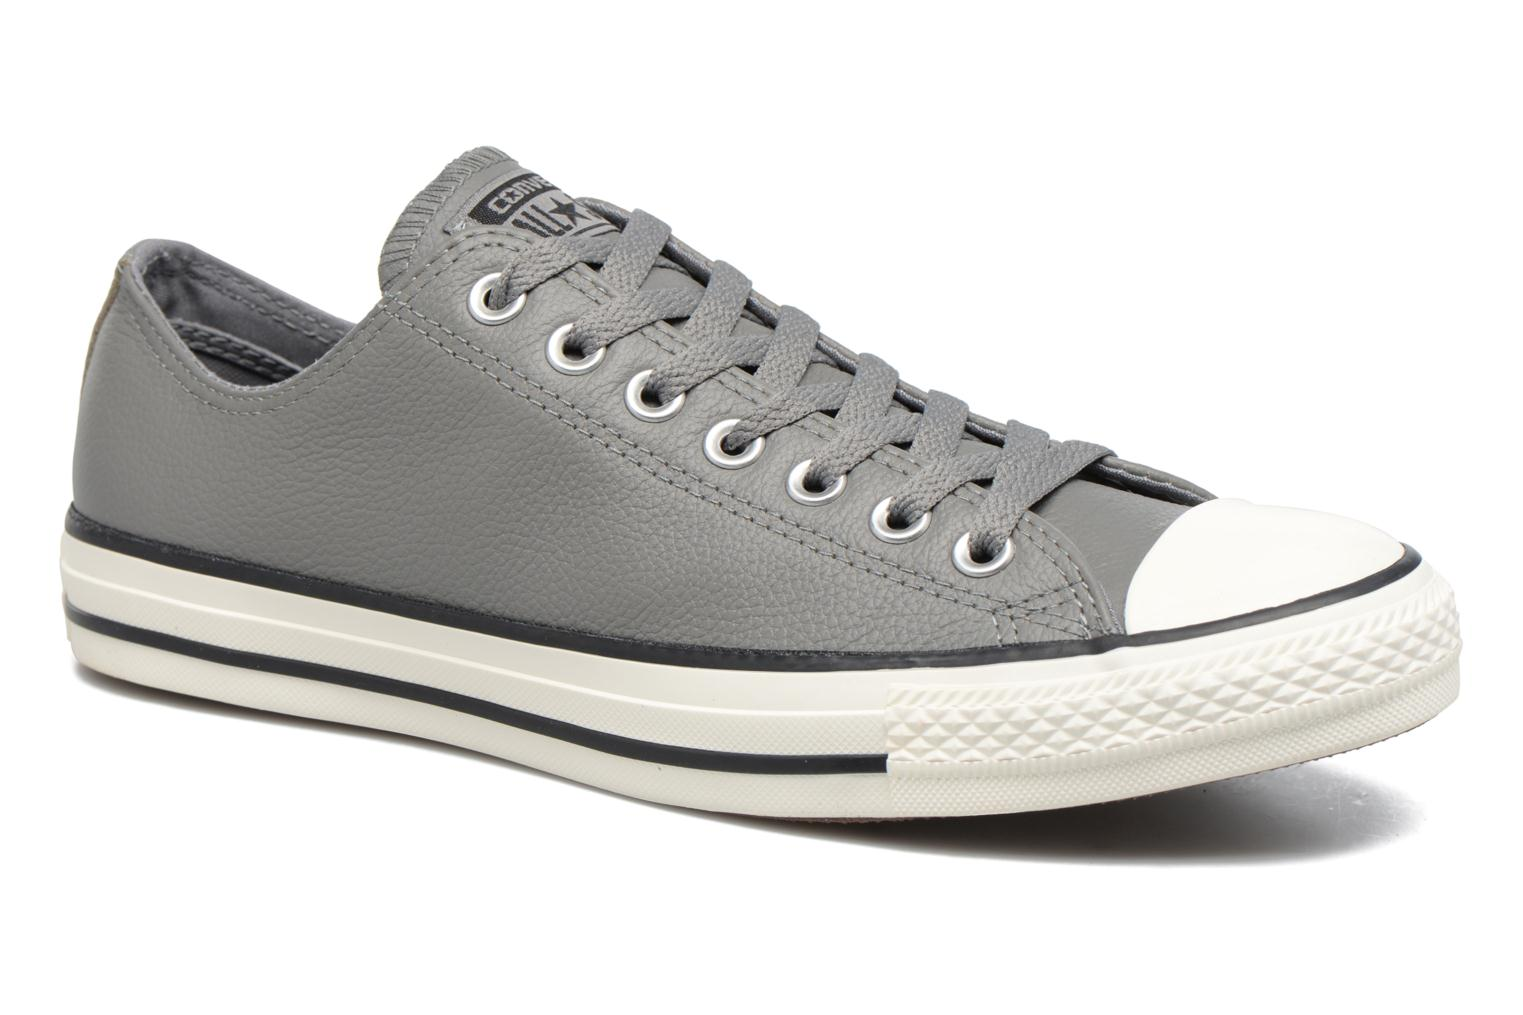 Sneaker Converse Chuck Taylor All Star Tumble Leather Ox grau detaillierte ansicht/modell